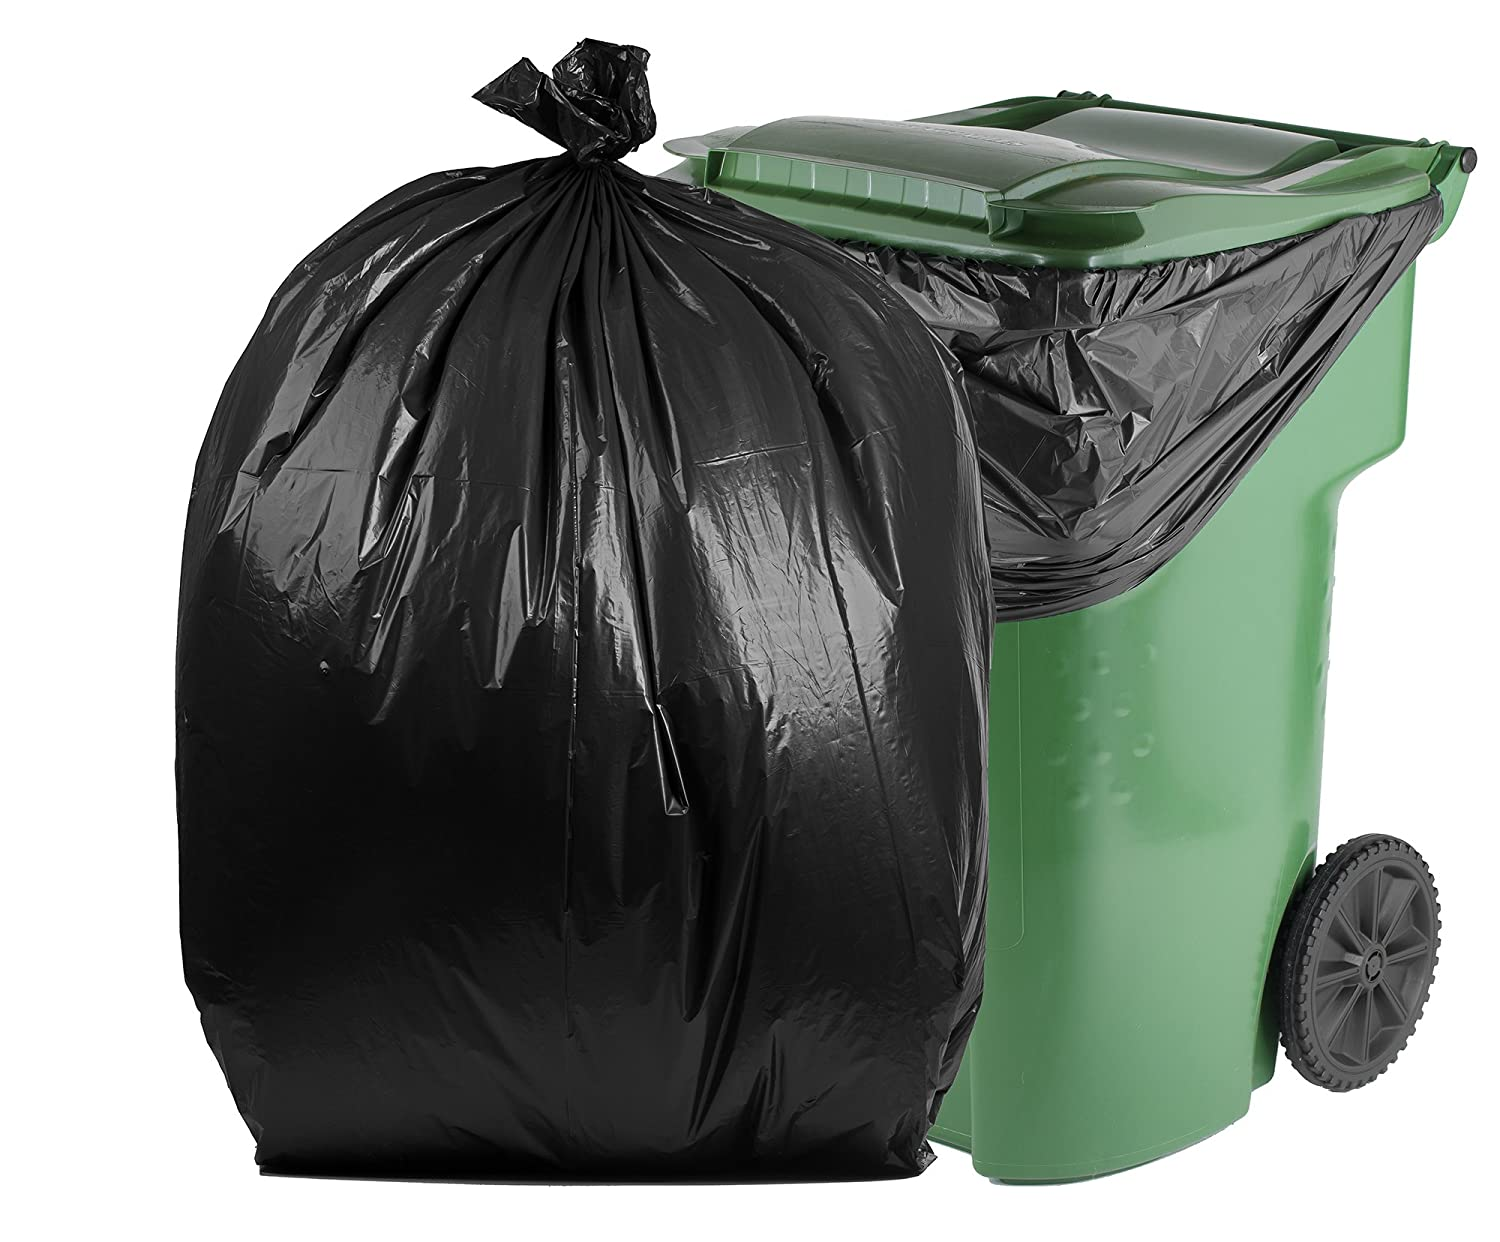 PM-6779-13-B-50 1.3 Mil PlasticMill 100 Gallon Black 50 Bags//Case 67x79 Garbage Bags//Trash Can Liners